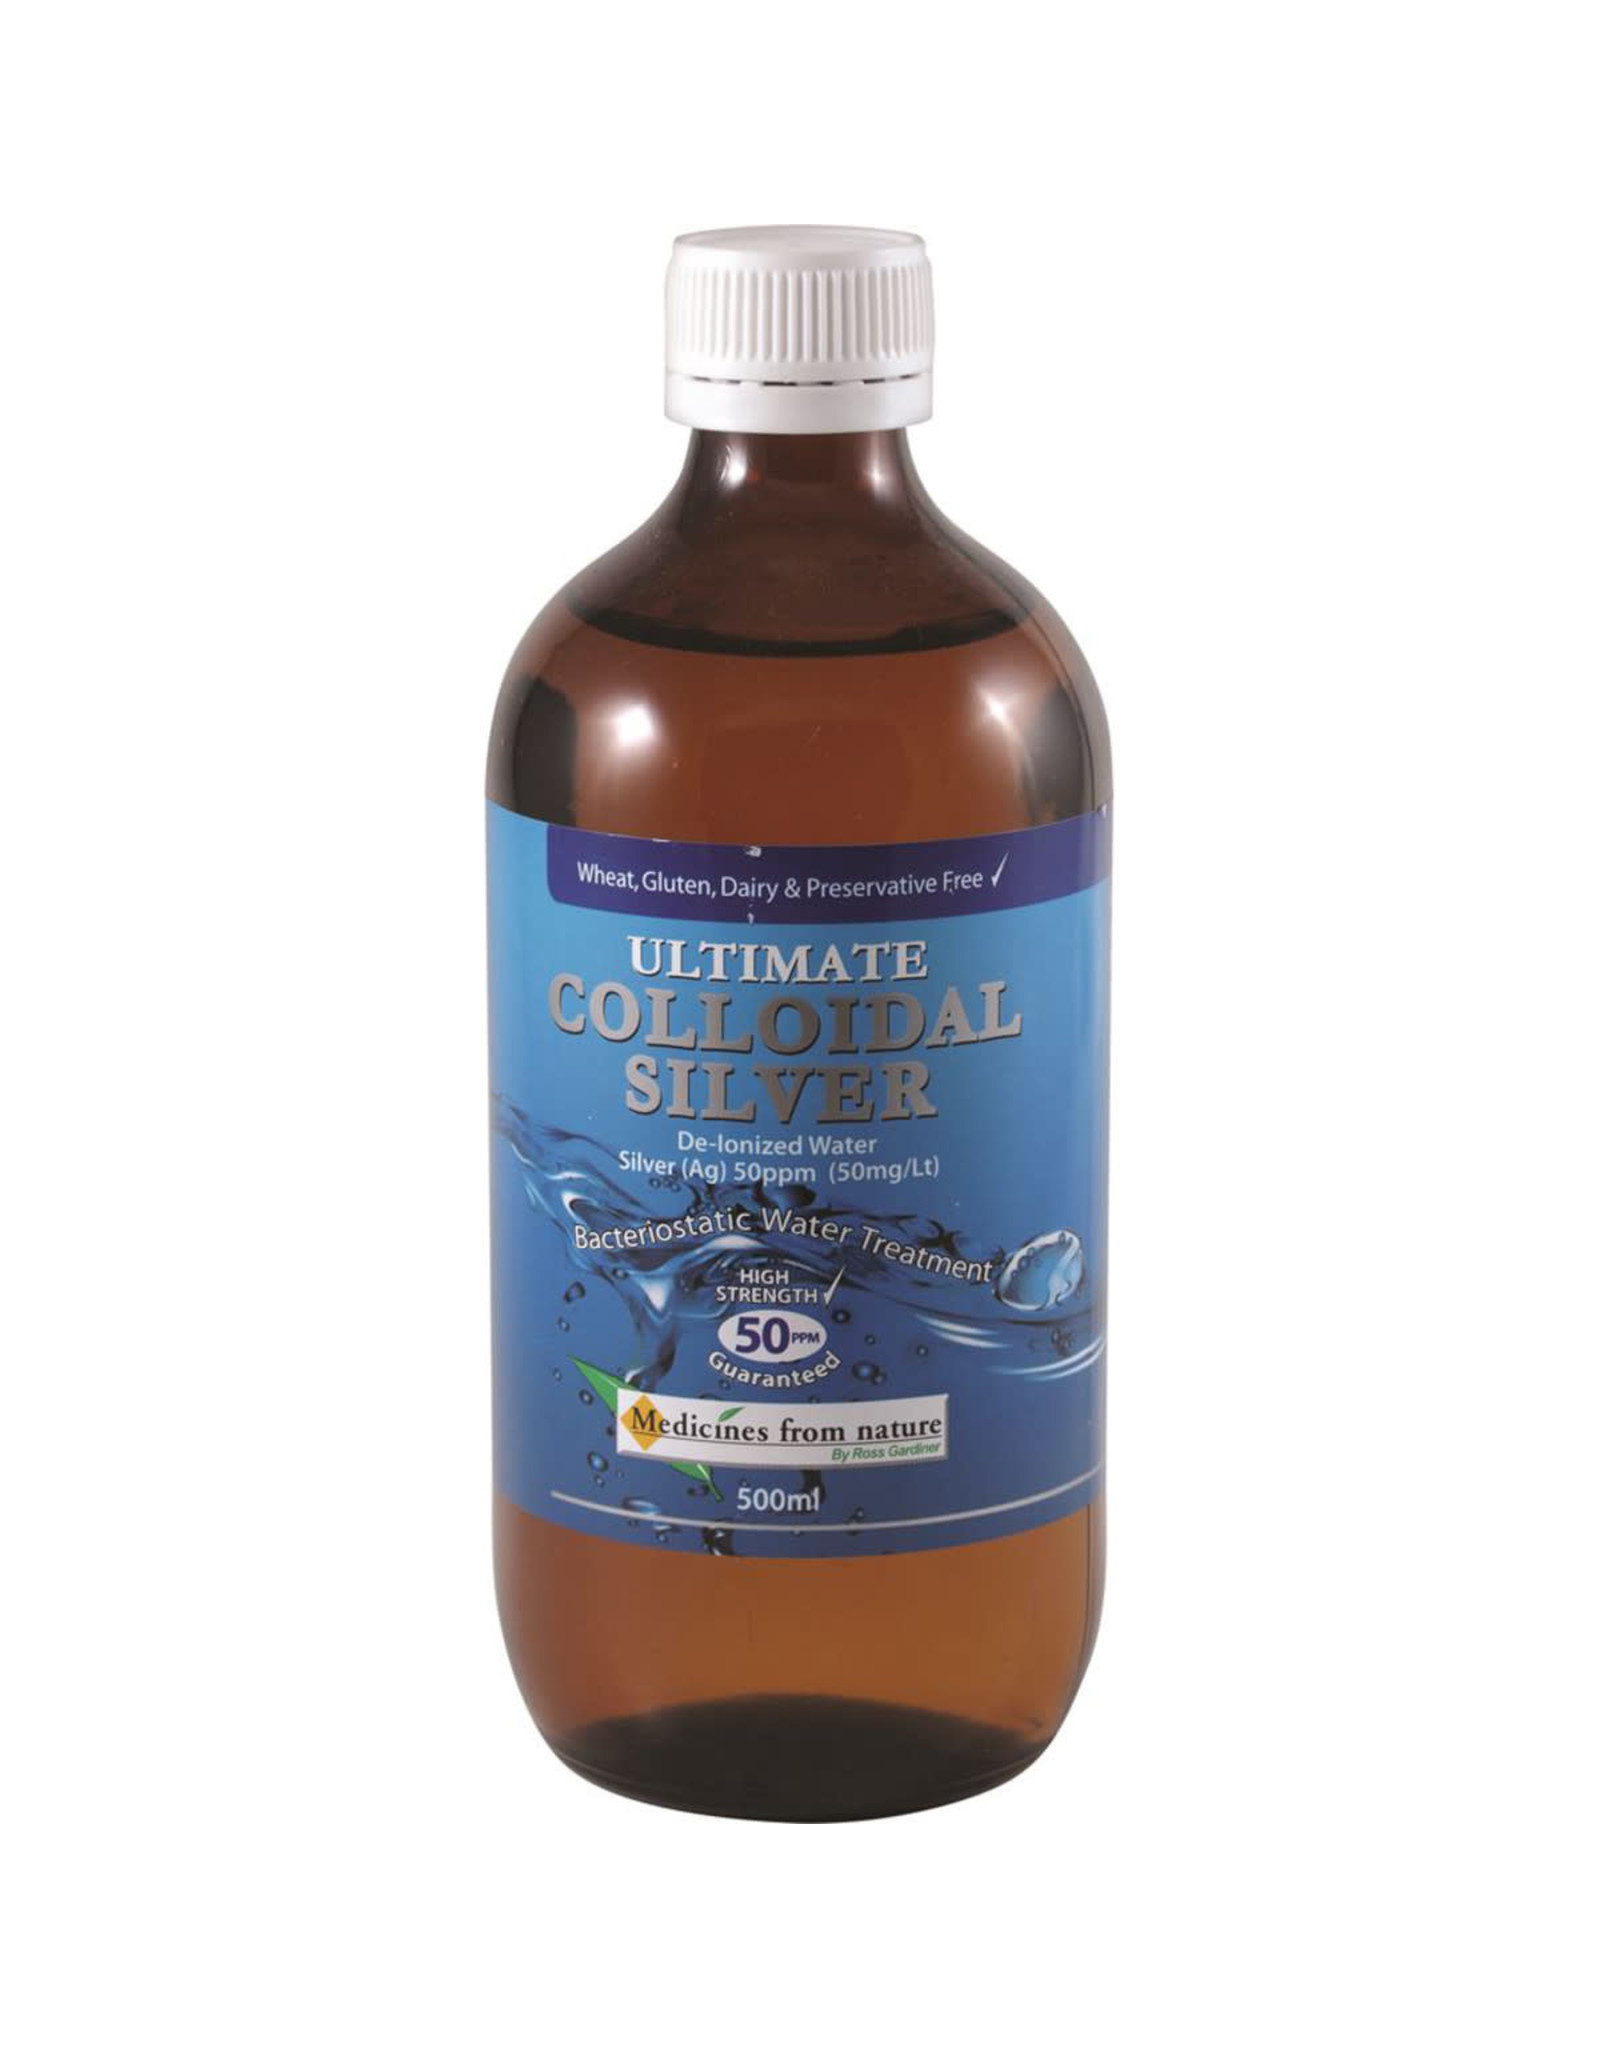 Full Health Industries Ultimate Colloidal Silver 50ppm 500ml